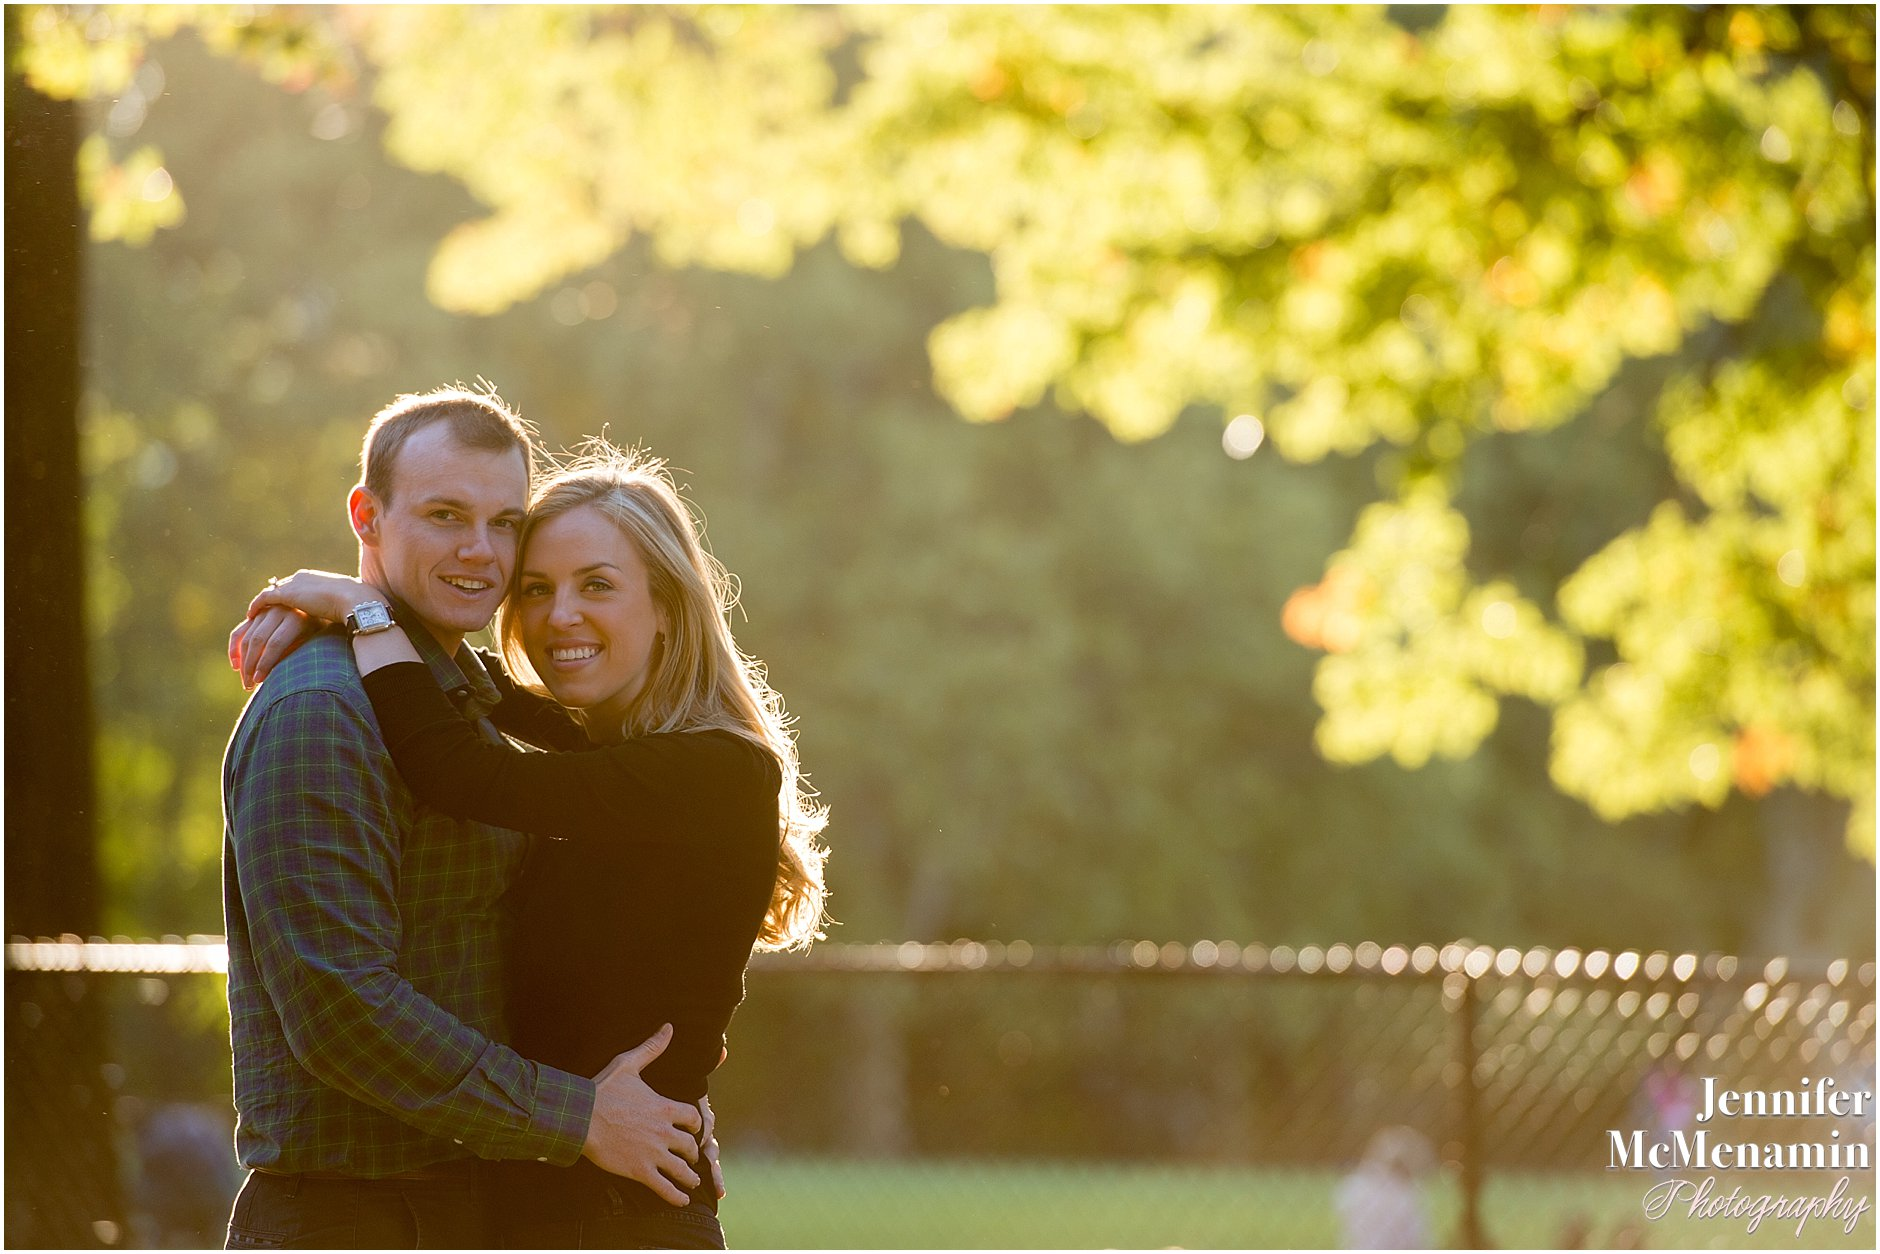 011-jennifer-mcmenamin-photography-nyc-engagement-photos_0009